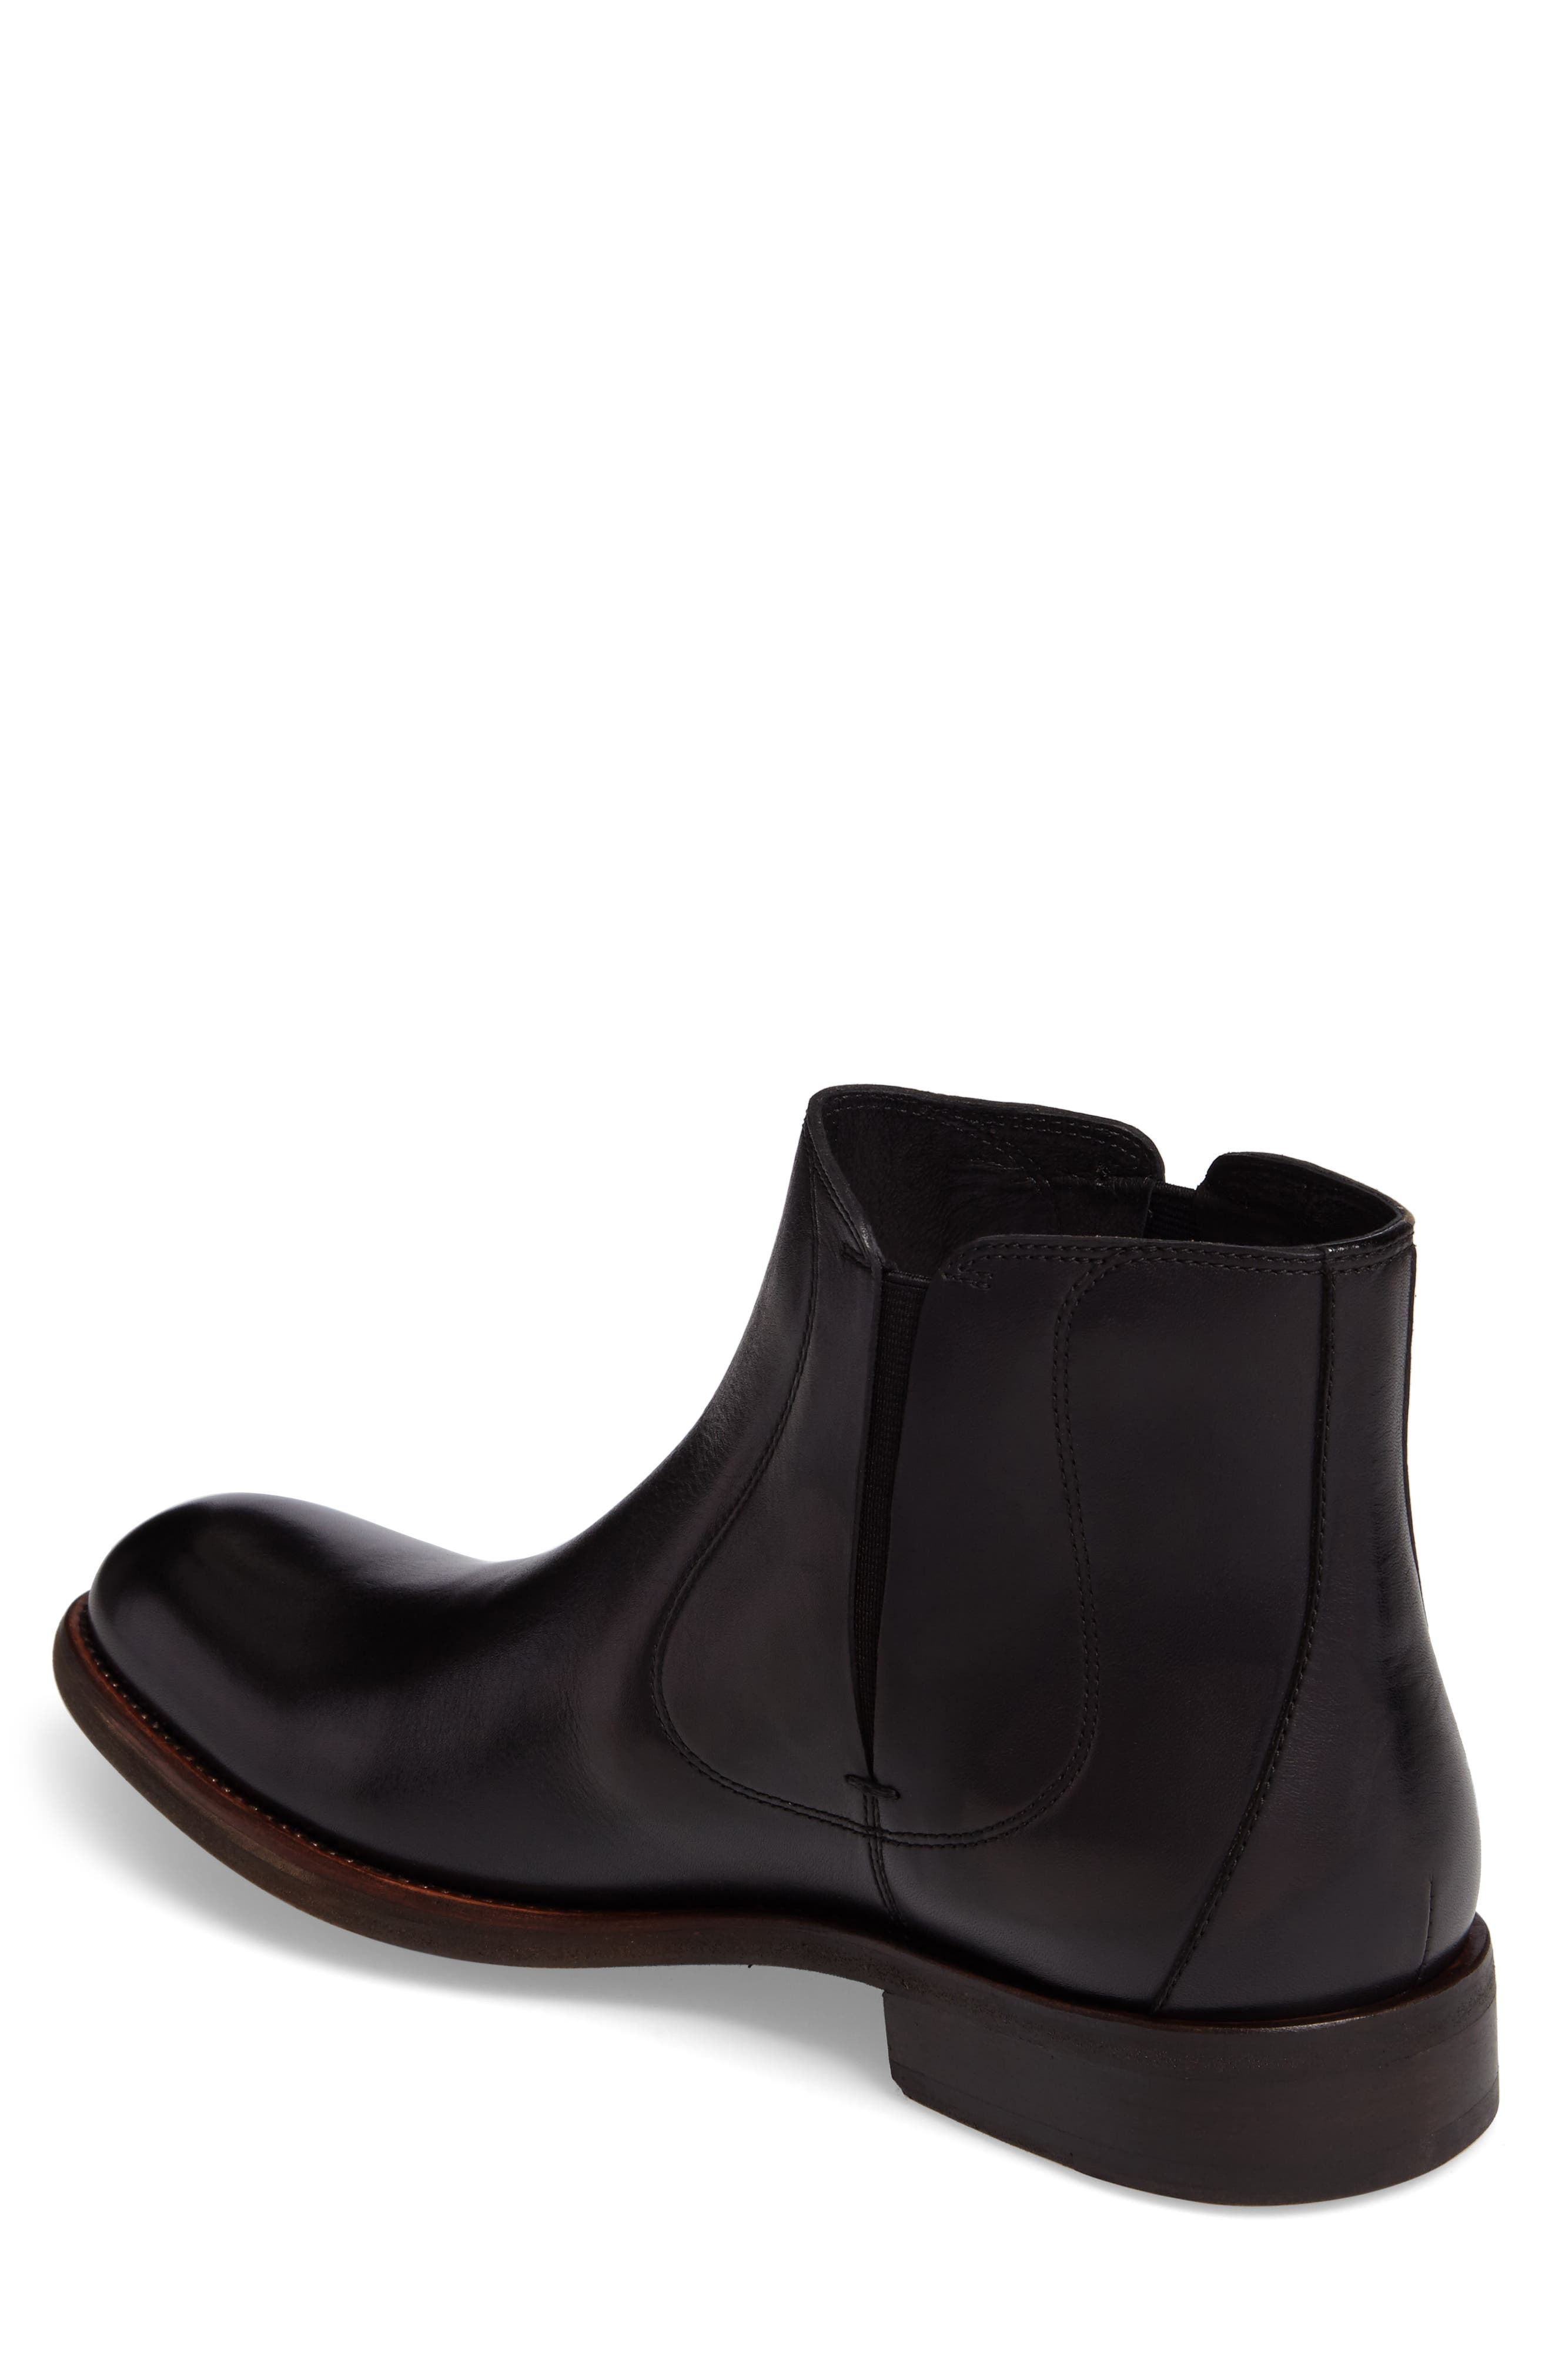 Waverley Chelsea Boot,                             Alternate thumbnail 2, color,                             BLACK LEATHER